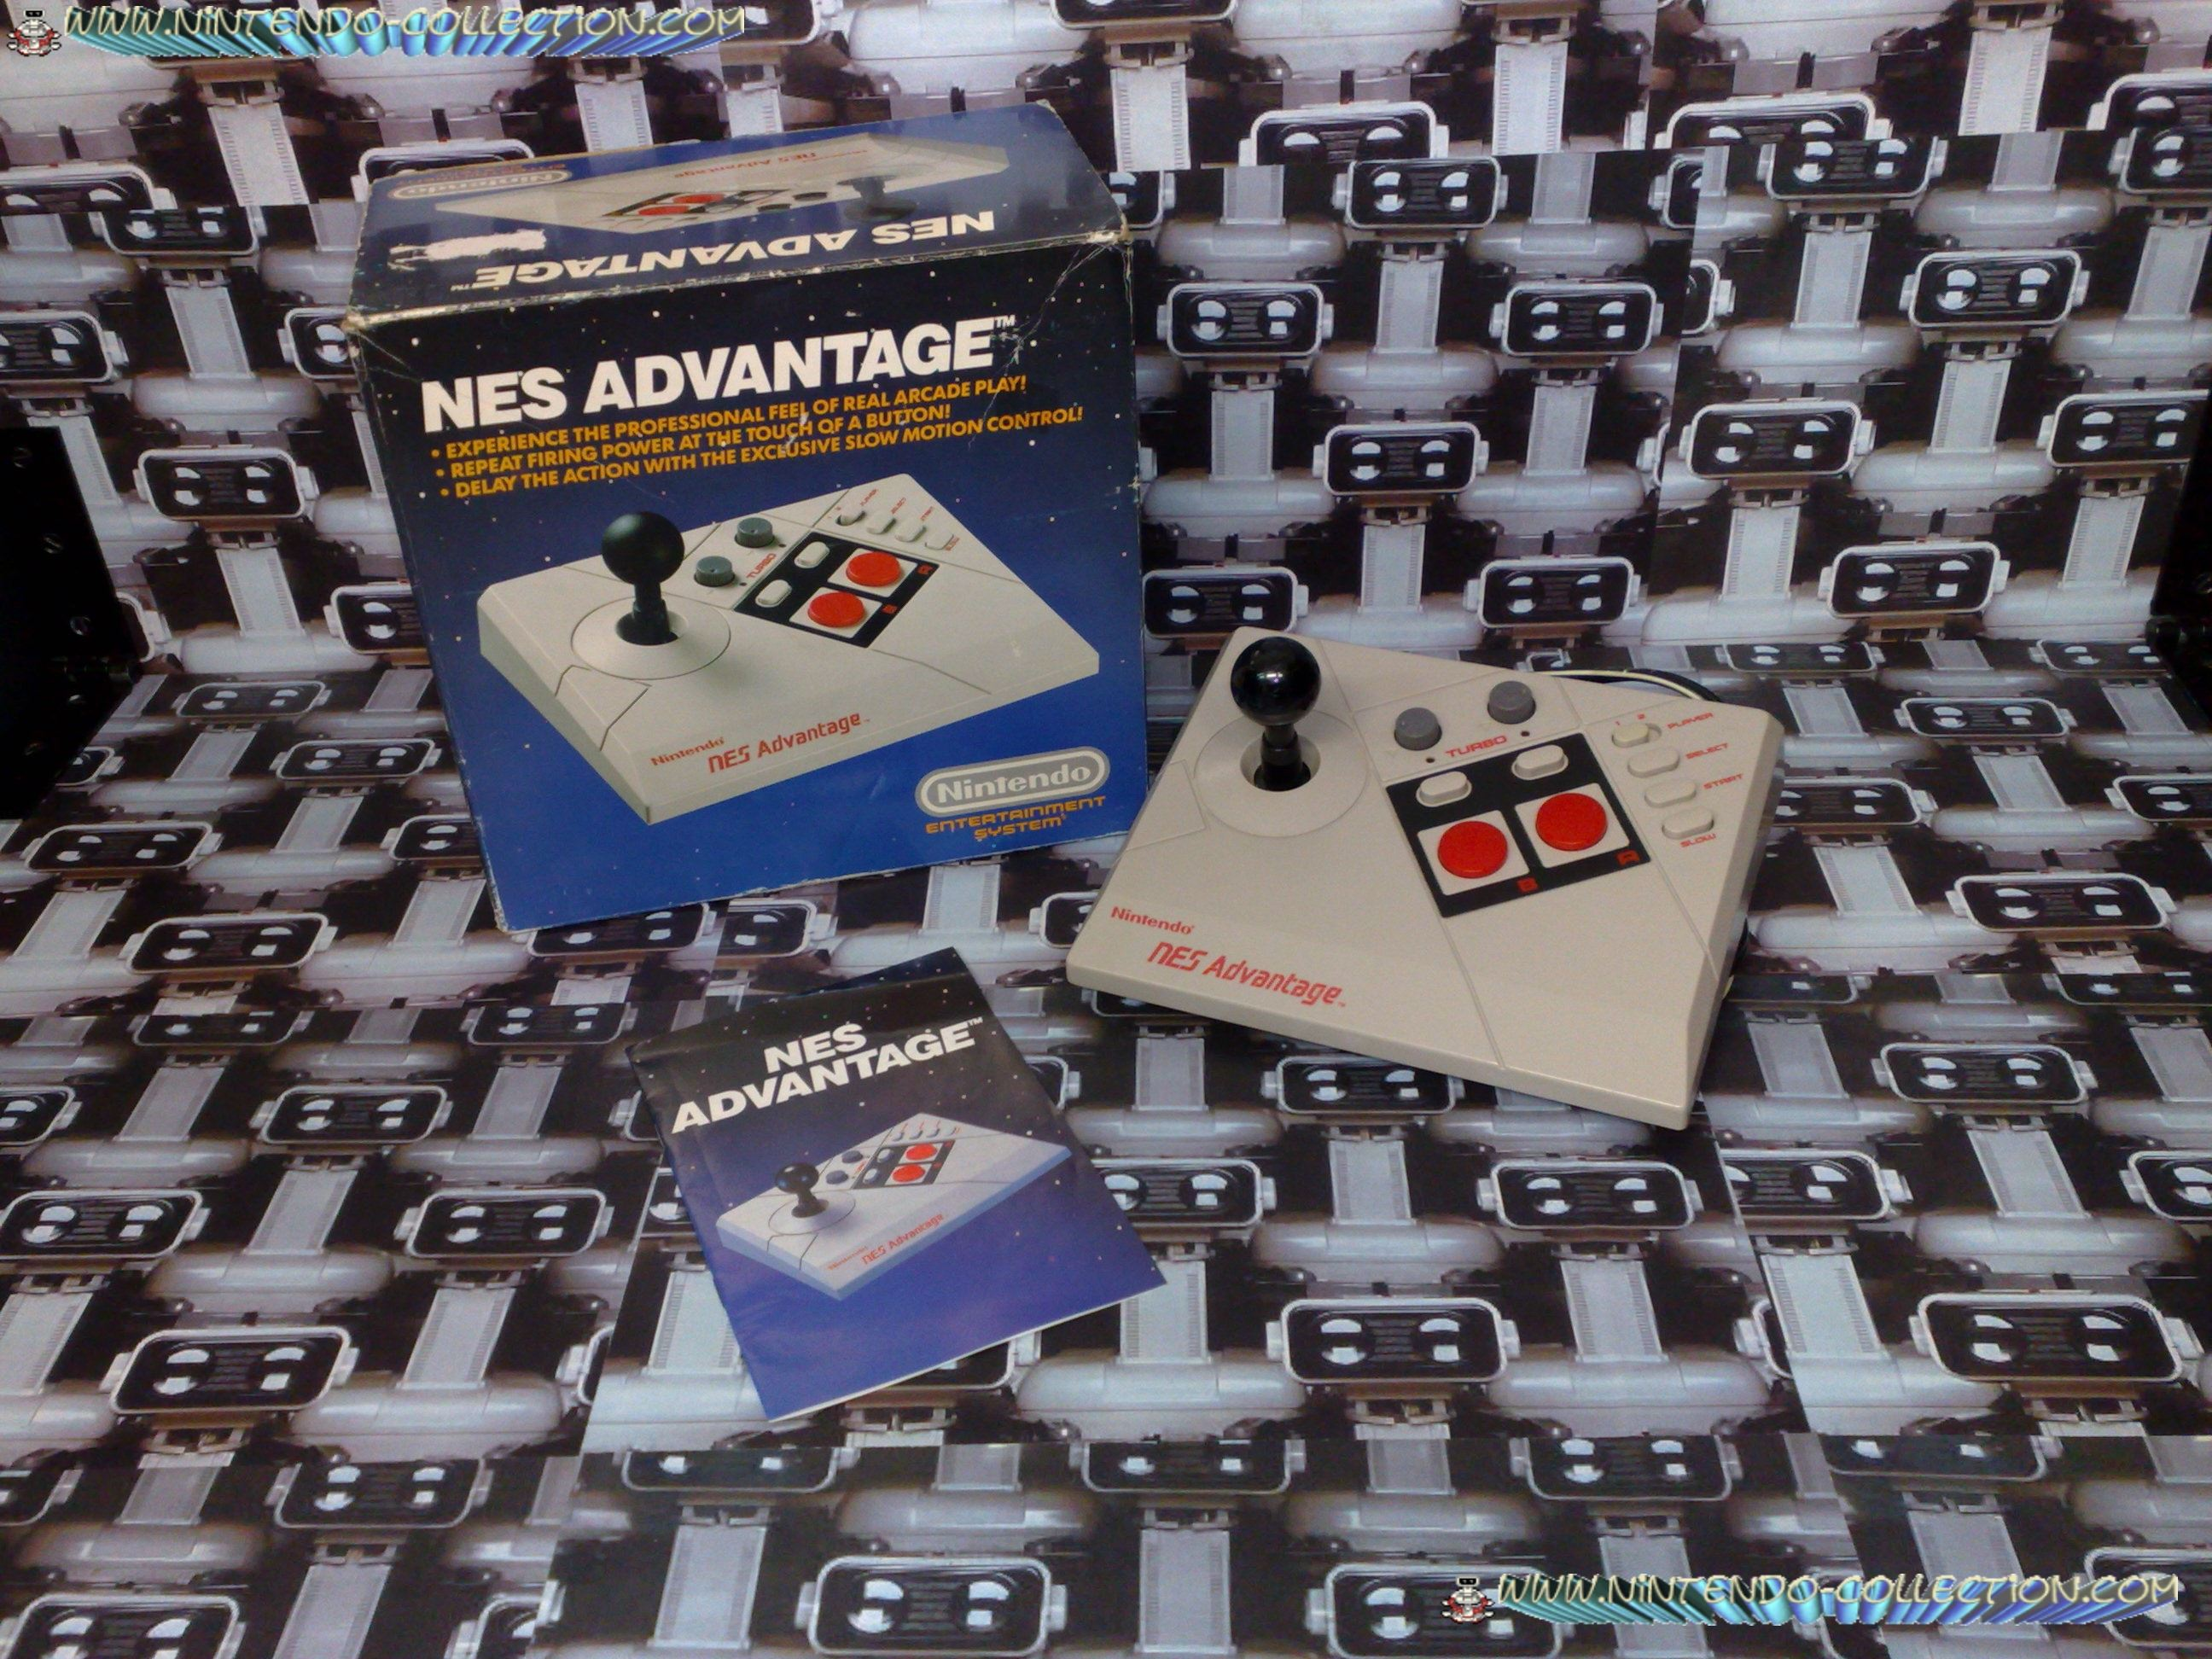 www.nintendo-collection.com - Nintendo NES Advantage - Accessoire en boite US- Accesory in box US